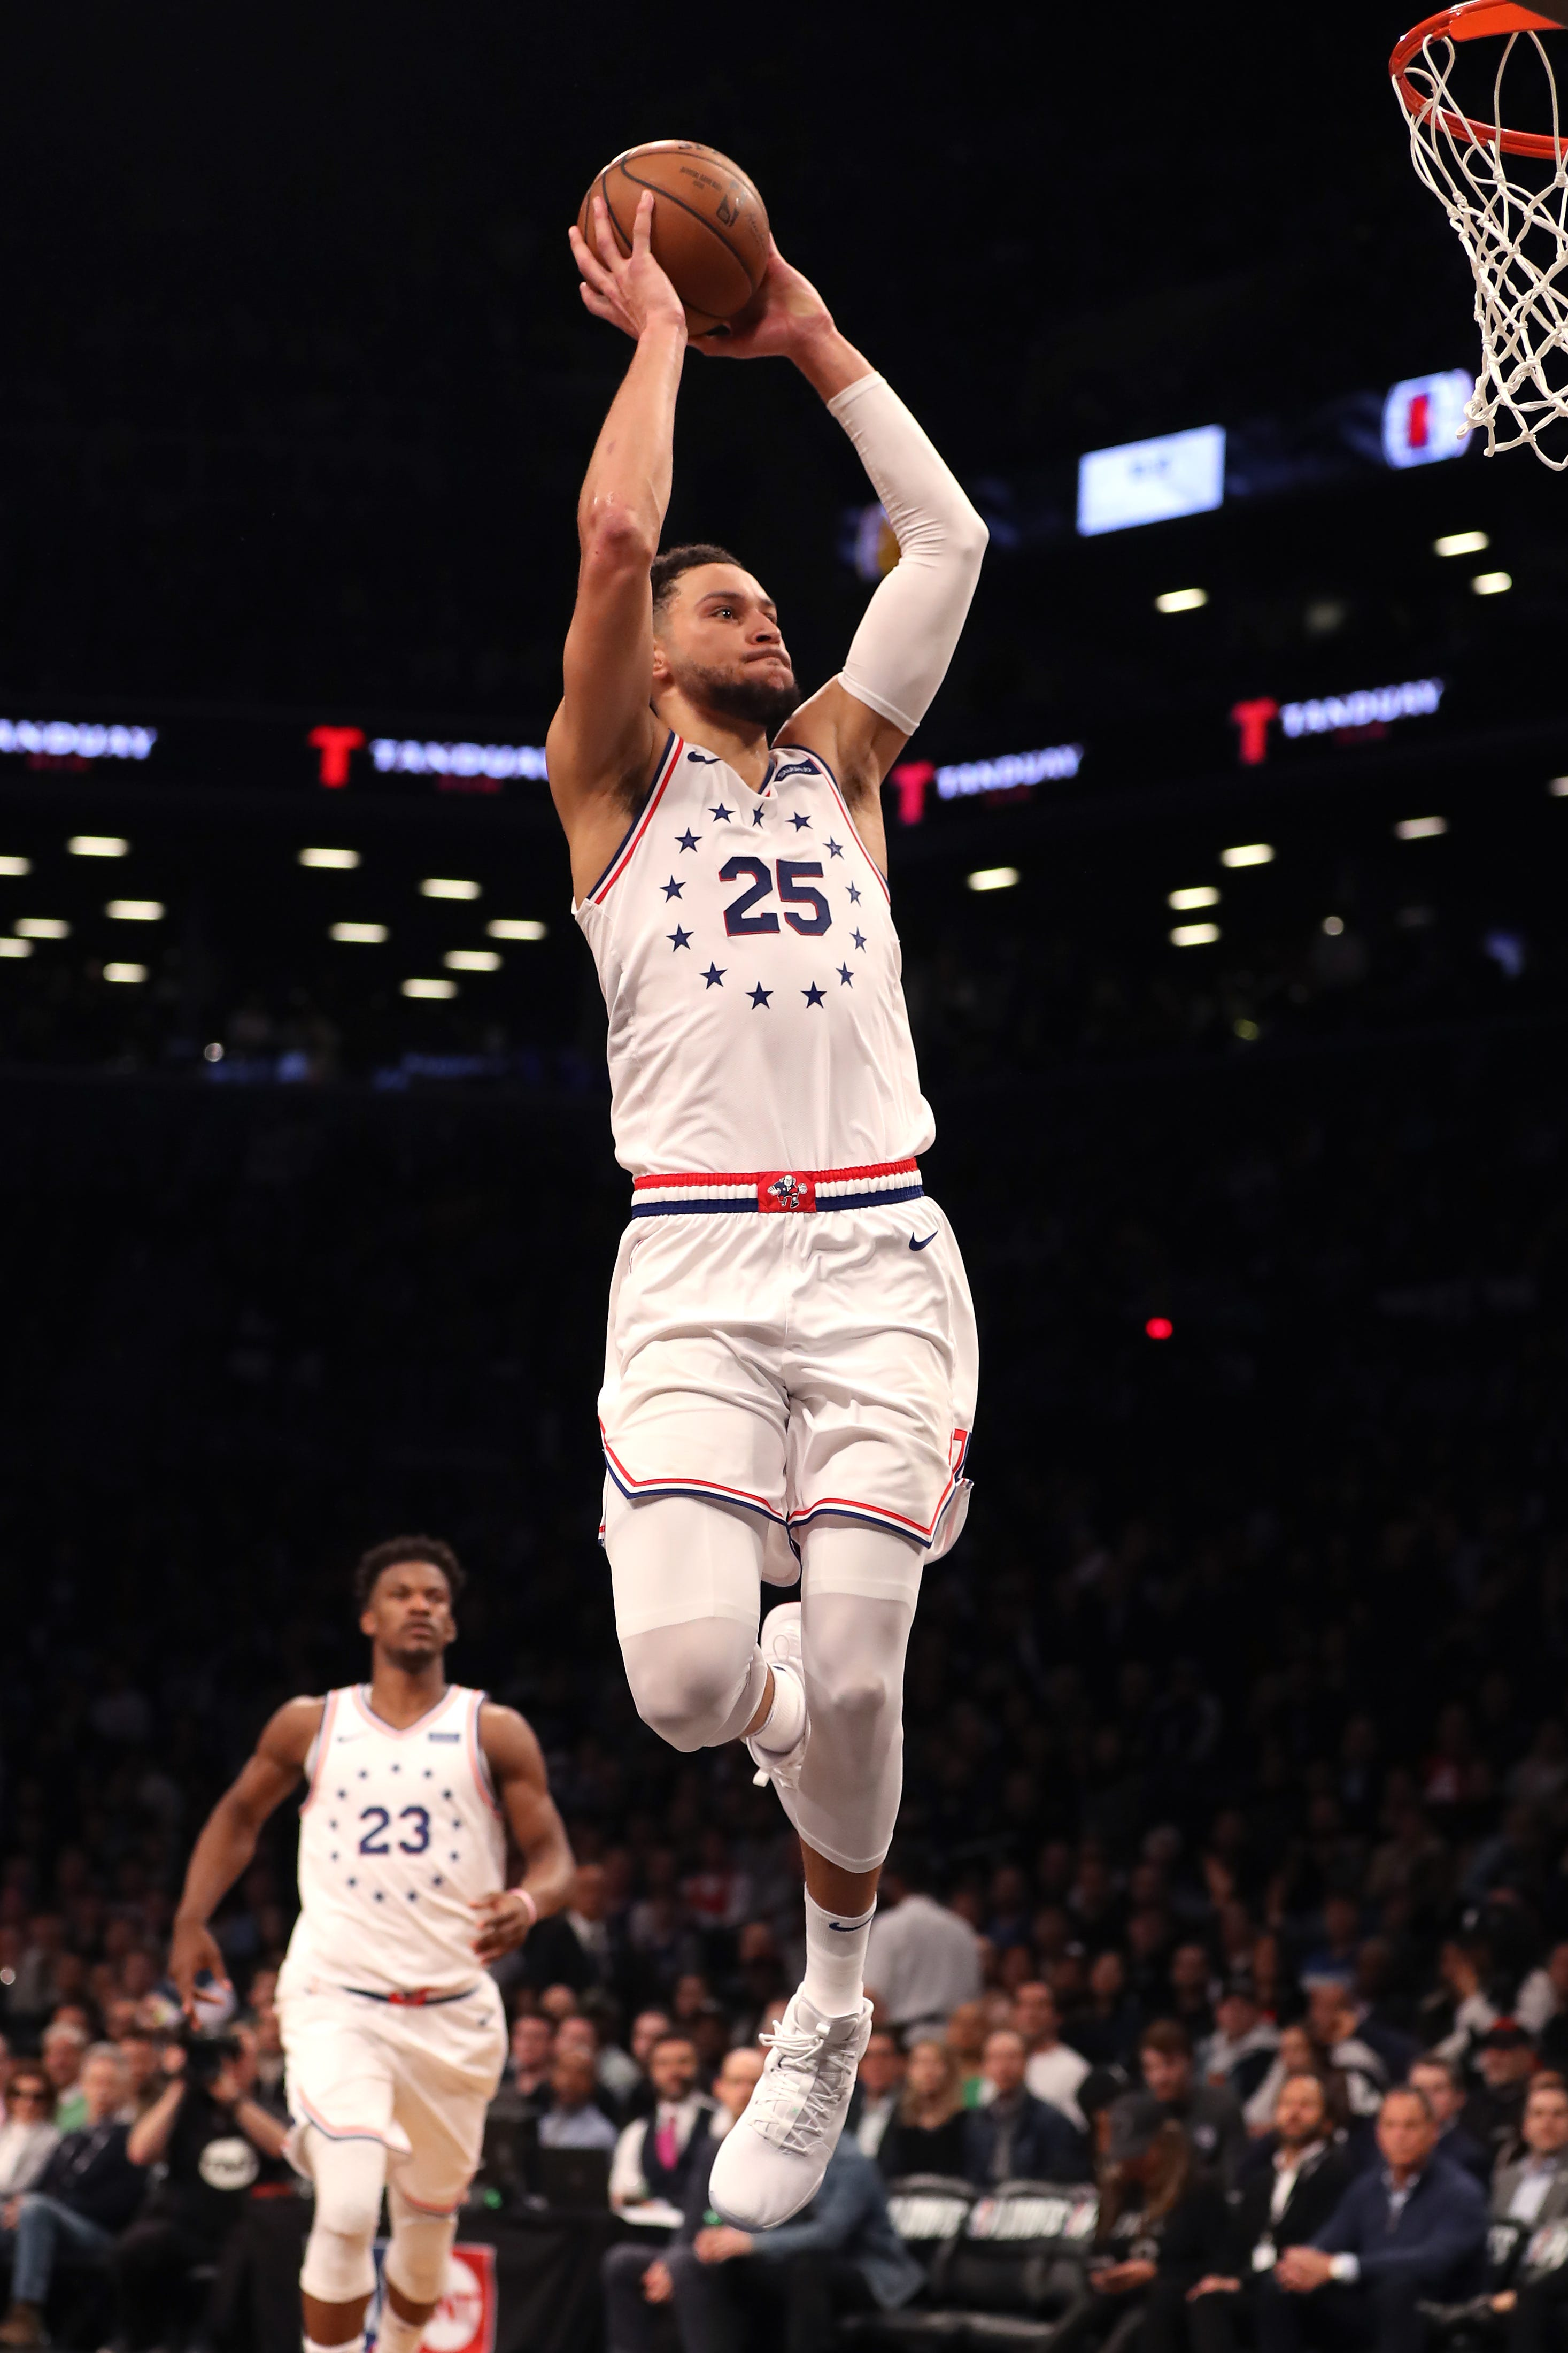 Sixers show off firepower to take down Nets in Game 3 for 2-1 series lead